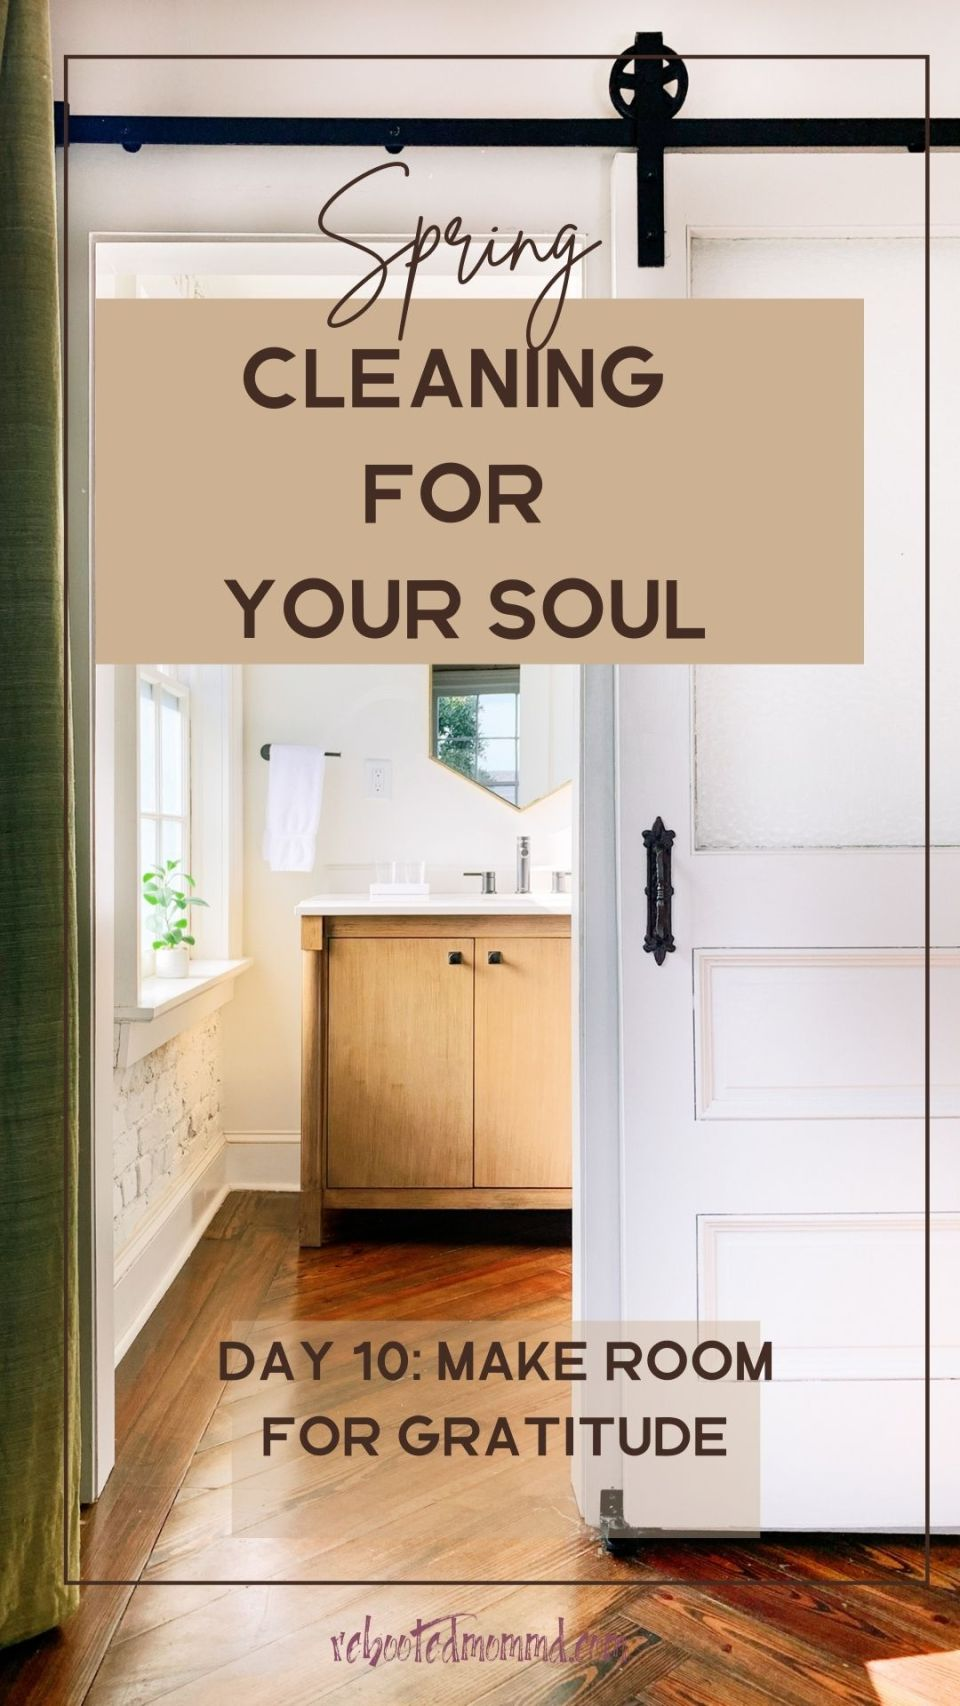 Spring Cleaning for Your Soul, Day 10: Make Room for Gratitude